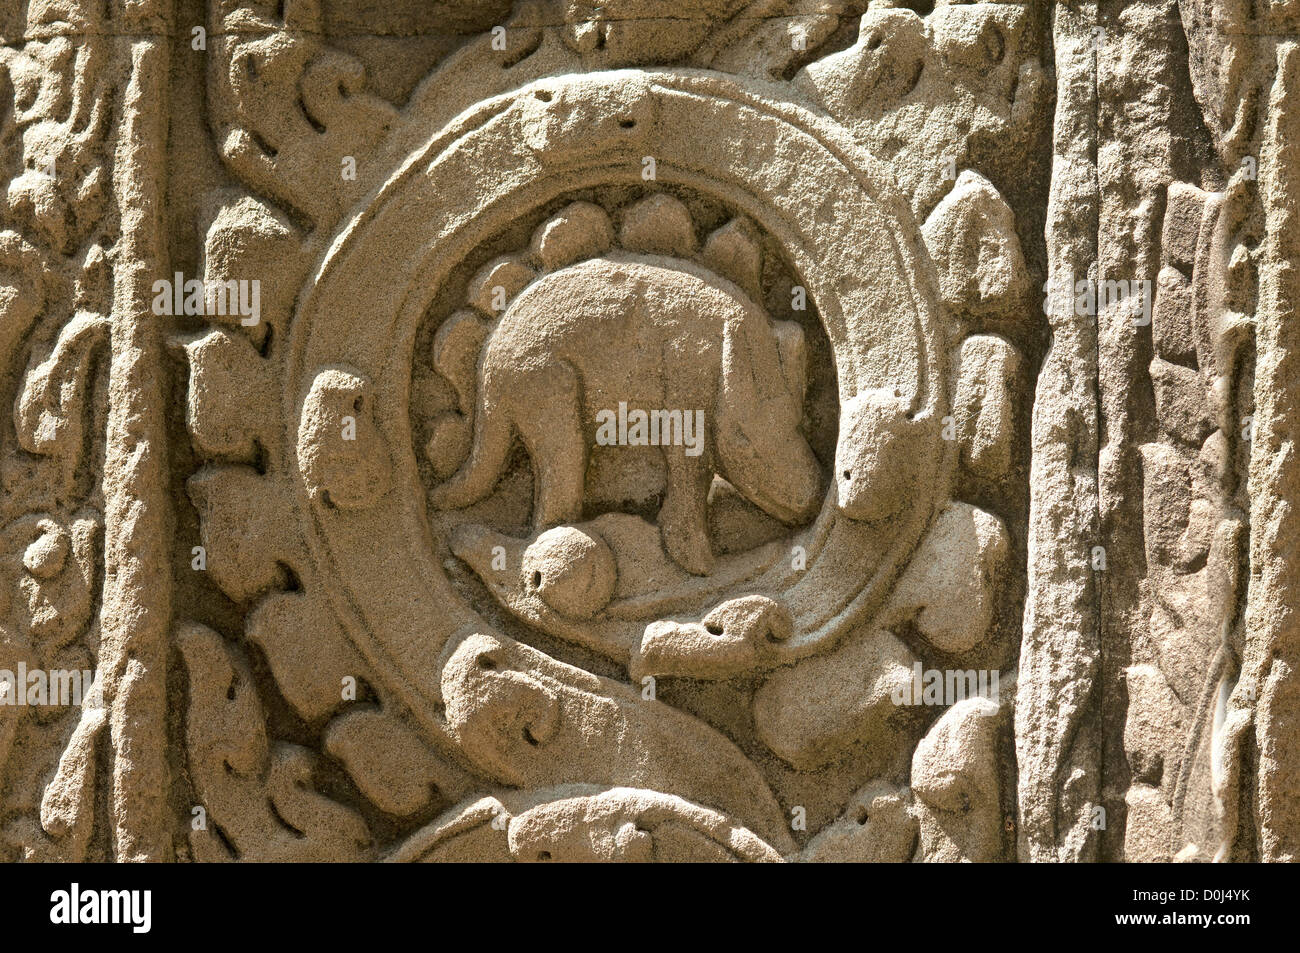 stone carving of an animal ressembling a stegosaurus, a rhinocereus or chameleon, Ta Prohm, Jungle temple, Angkor, - Stock Image